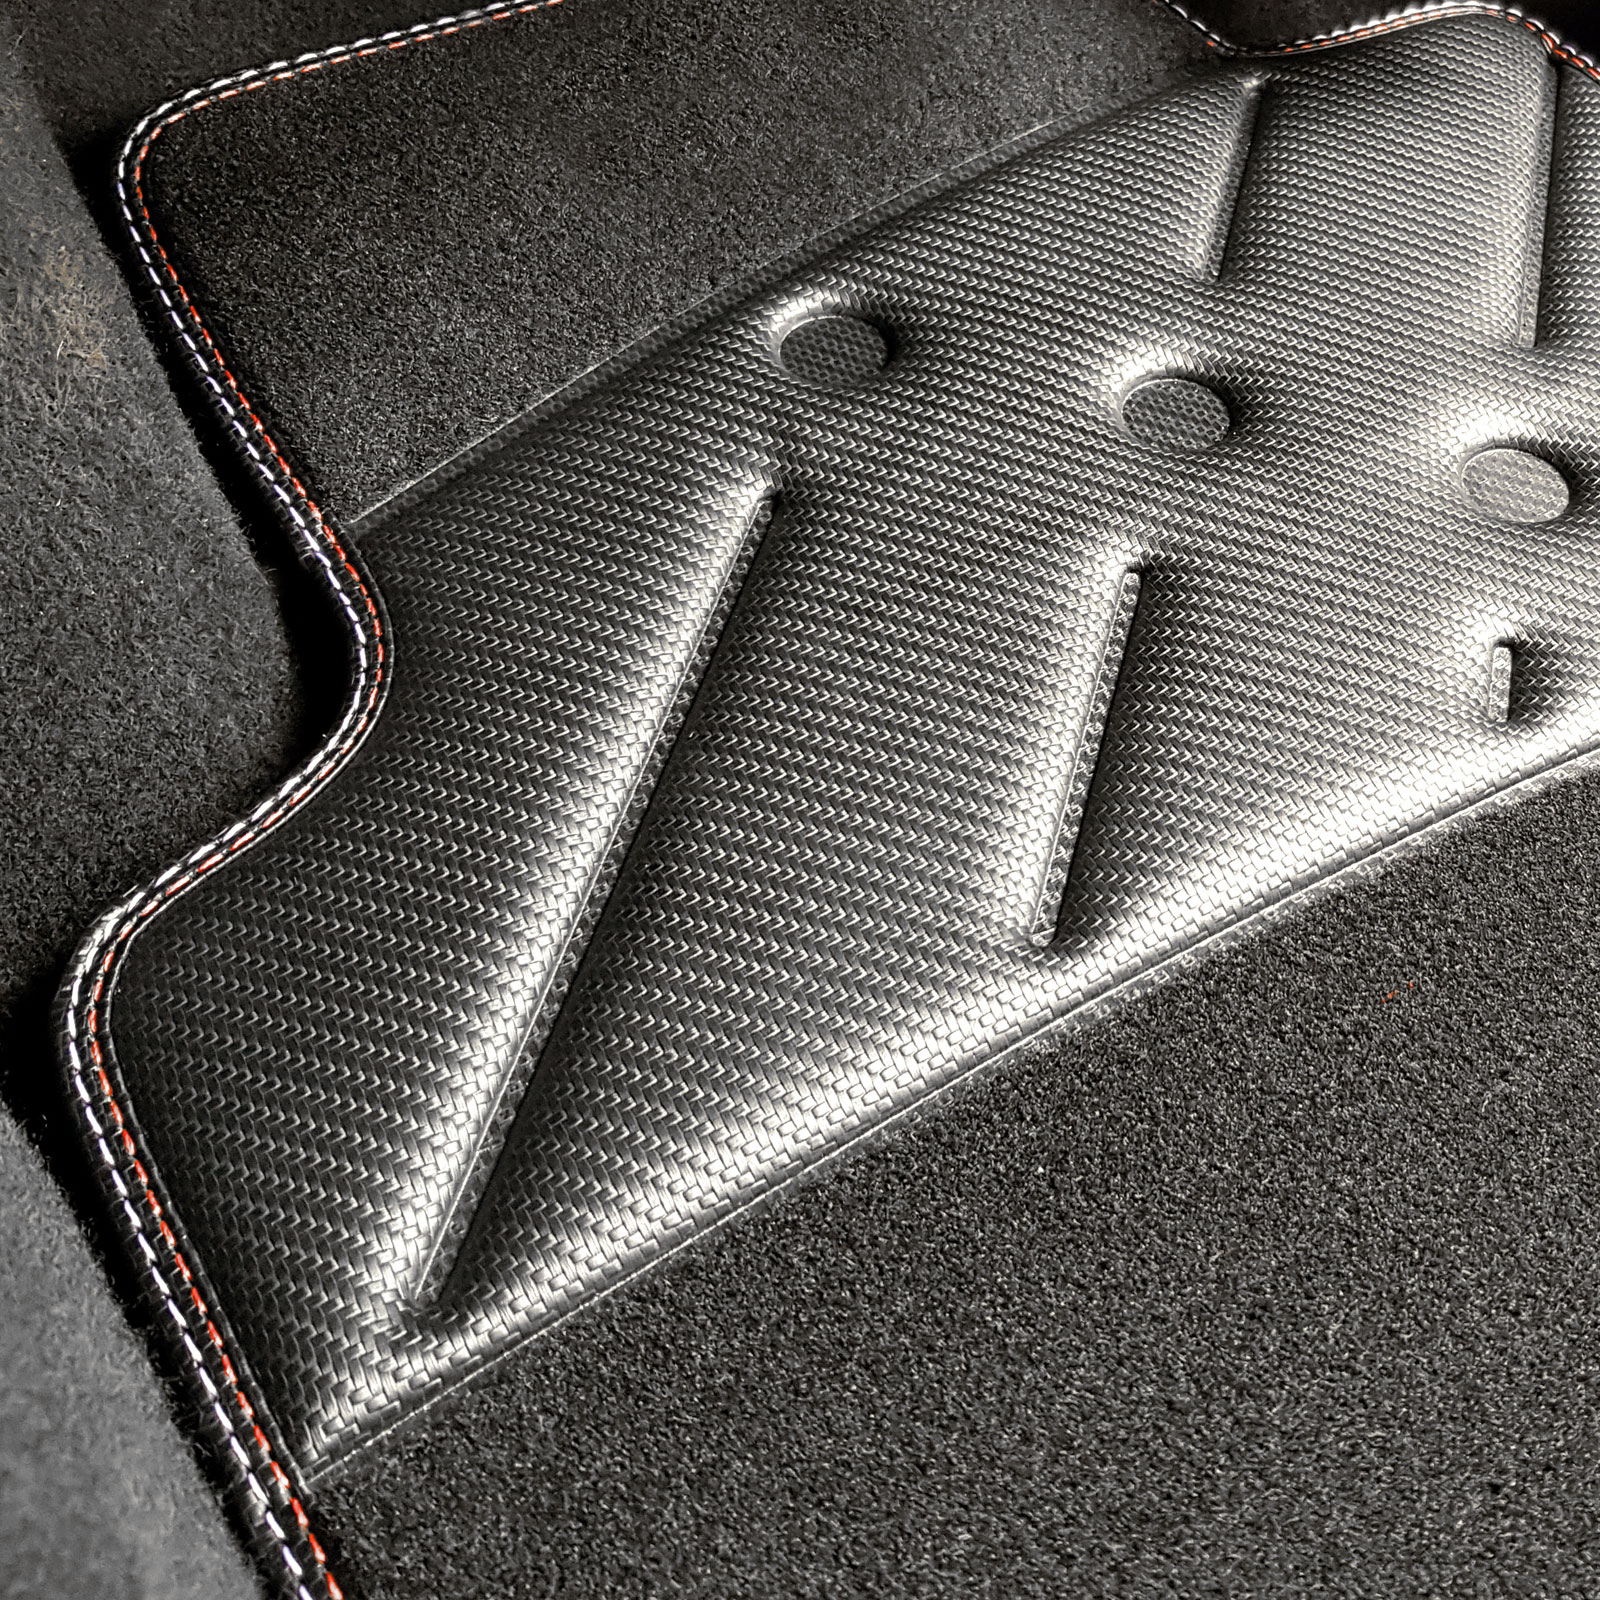 Car-Mats-for-Kia-Sportage-2005-2010-Black-Grey-Carbon-Mats